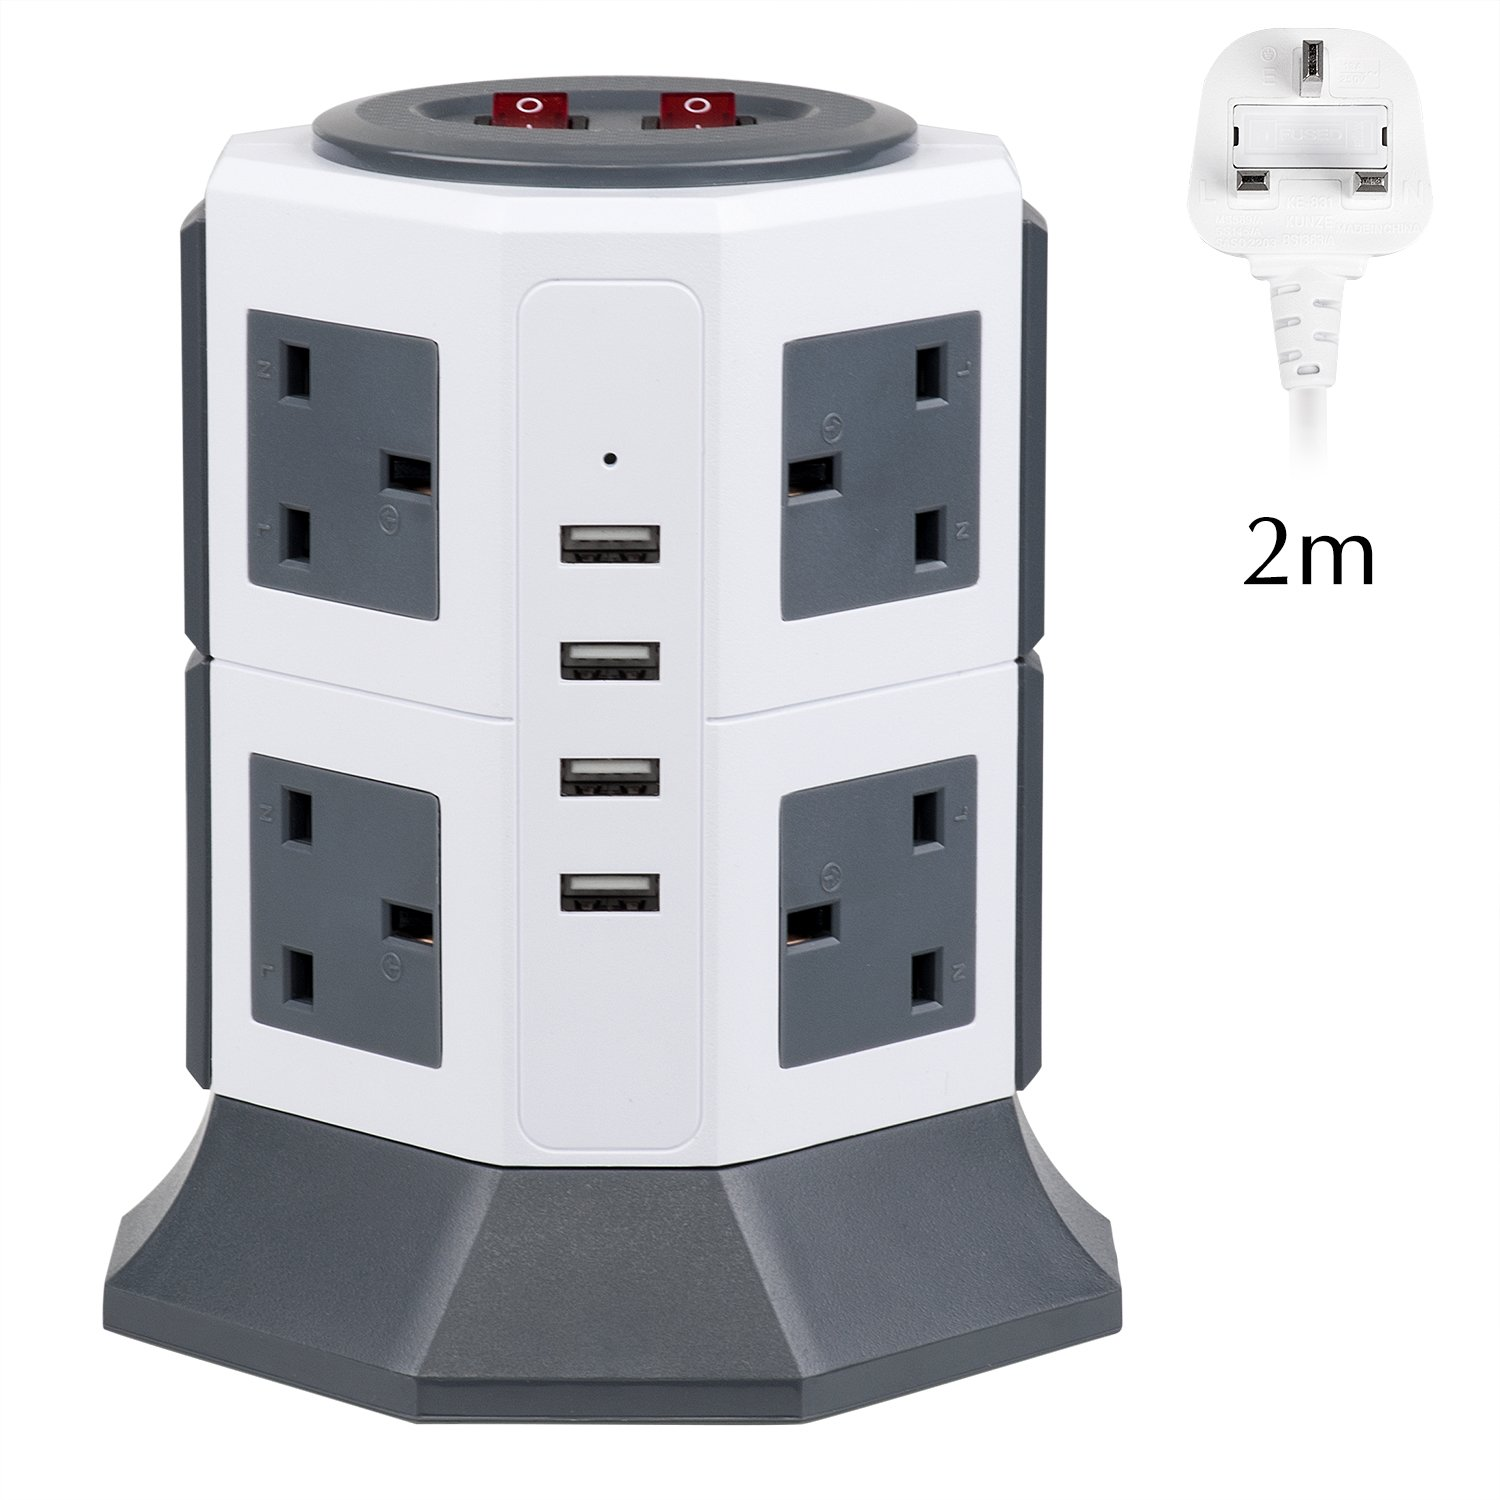 Extension Lead, PRITEK 8 Way Outlets Vertical Tower Power Strip with 4 Smart USB Charging Ports 10A/2500W 1000 Joules Surge Protector Extension Socket with 2m/6.5ft Extension Cord (Black)